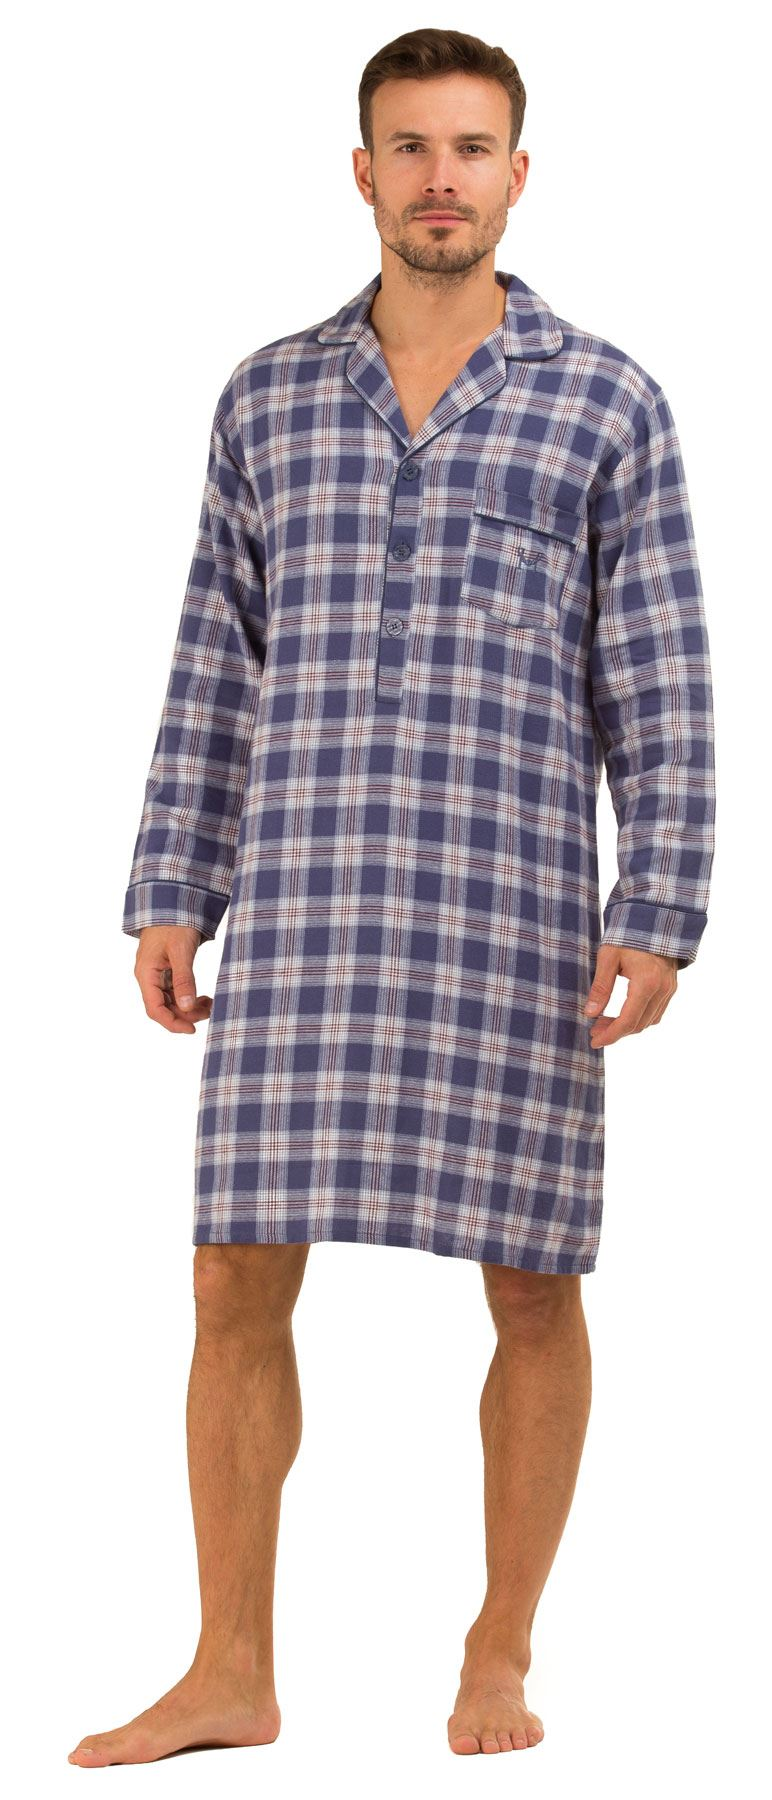 Men's Clothing, Pajamas & Robes and Shoes on Sale at Macy's come in a variety of styles. Shop Macy's Sale & Clearance for men's clothing, Pajamas & .